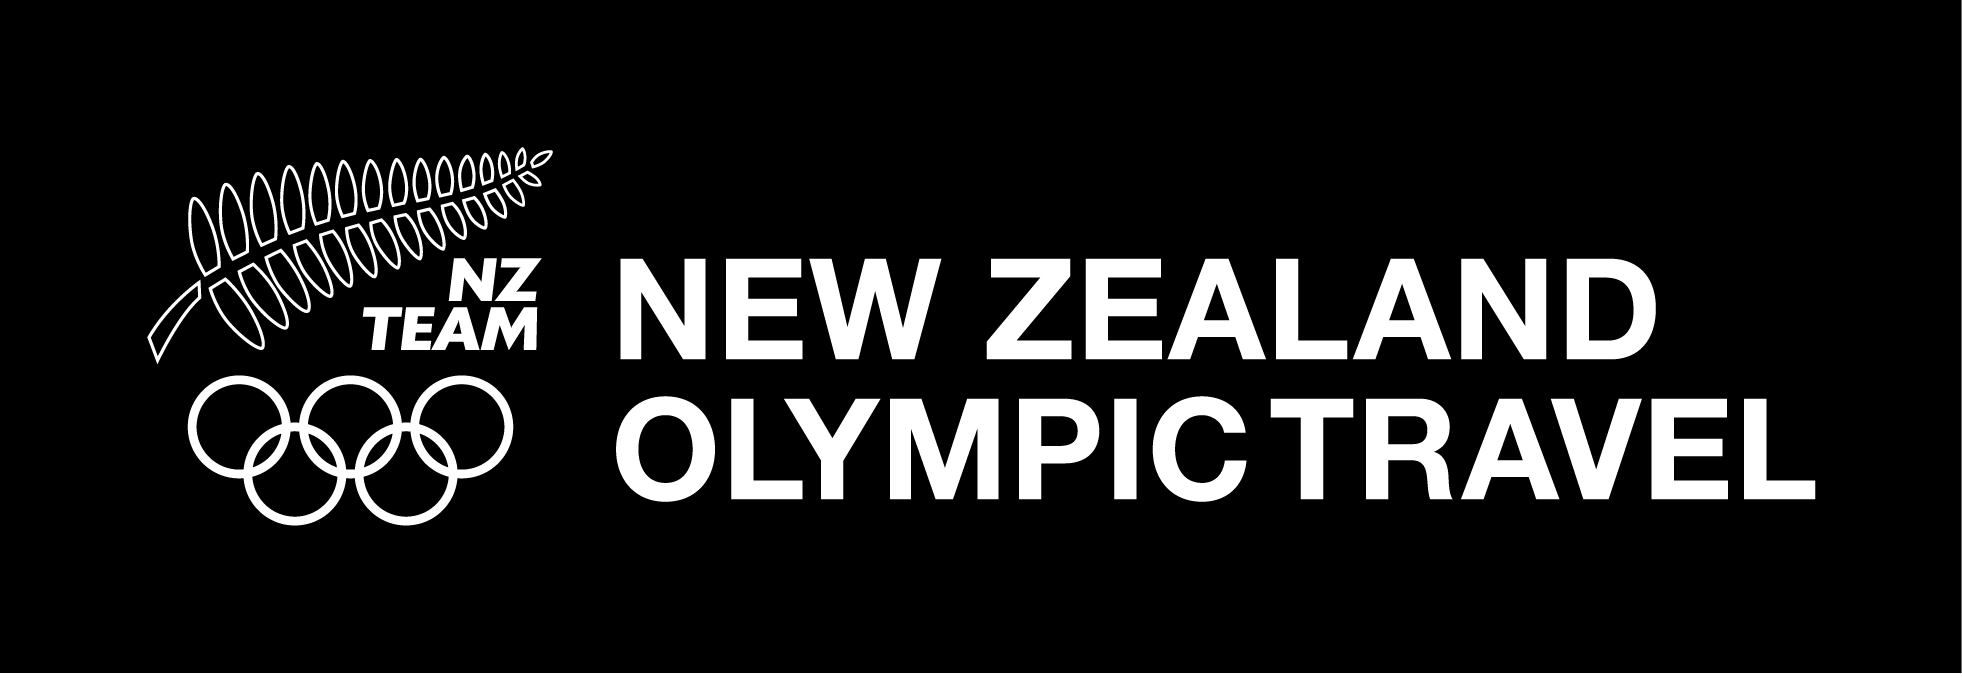 New Zealand Olympic Travel